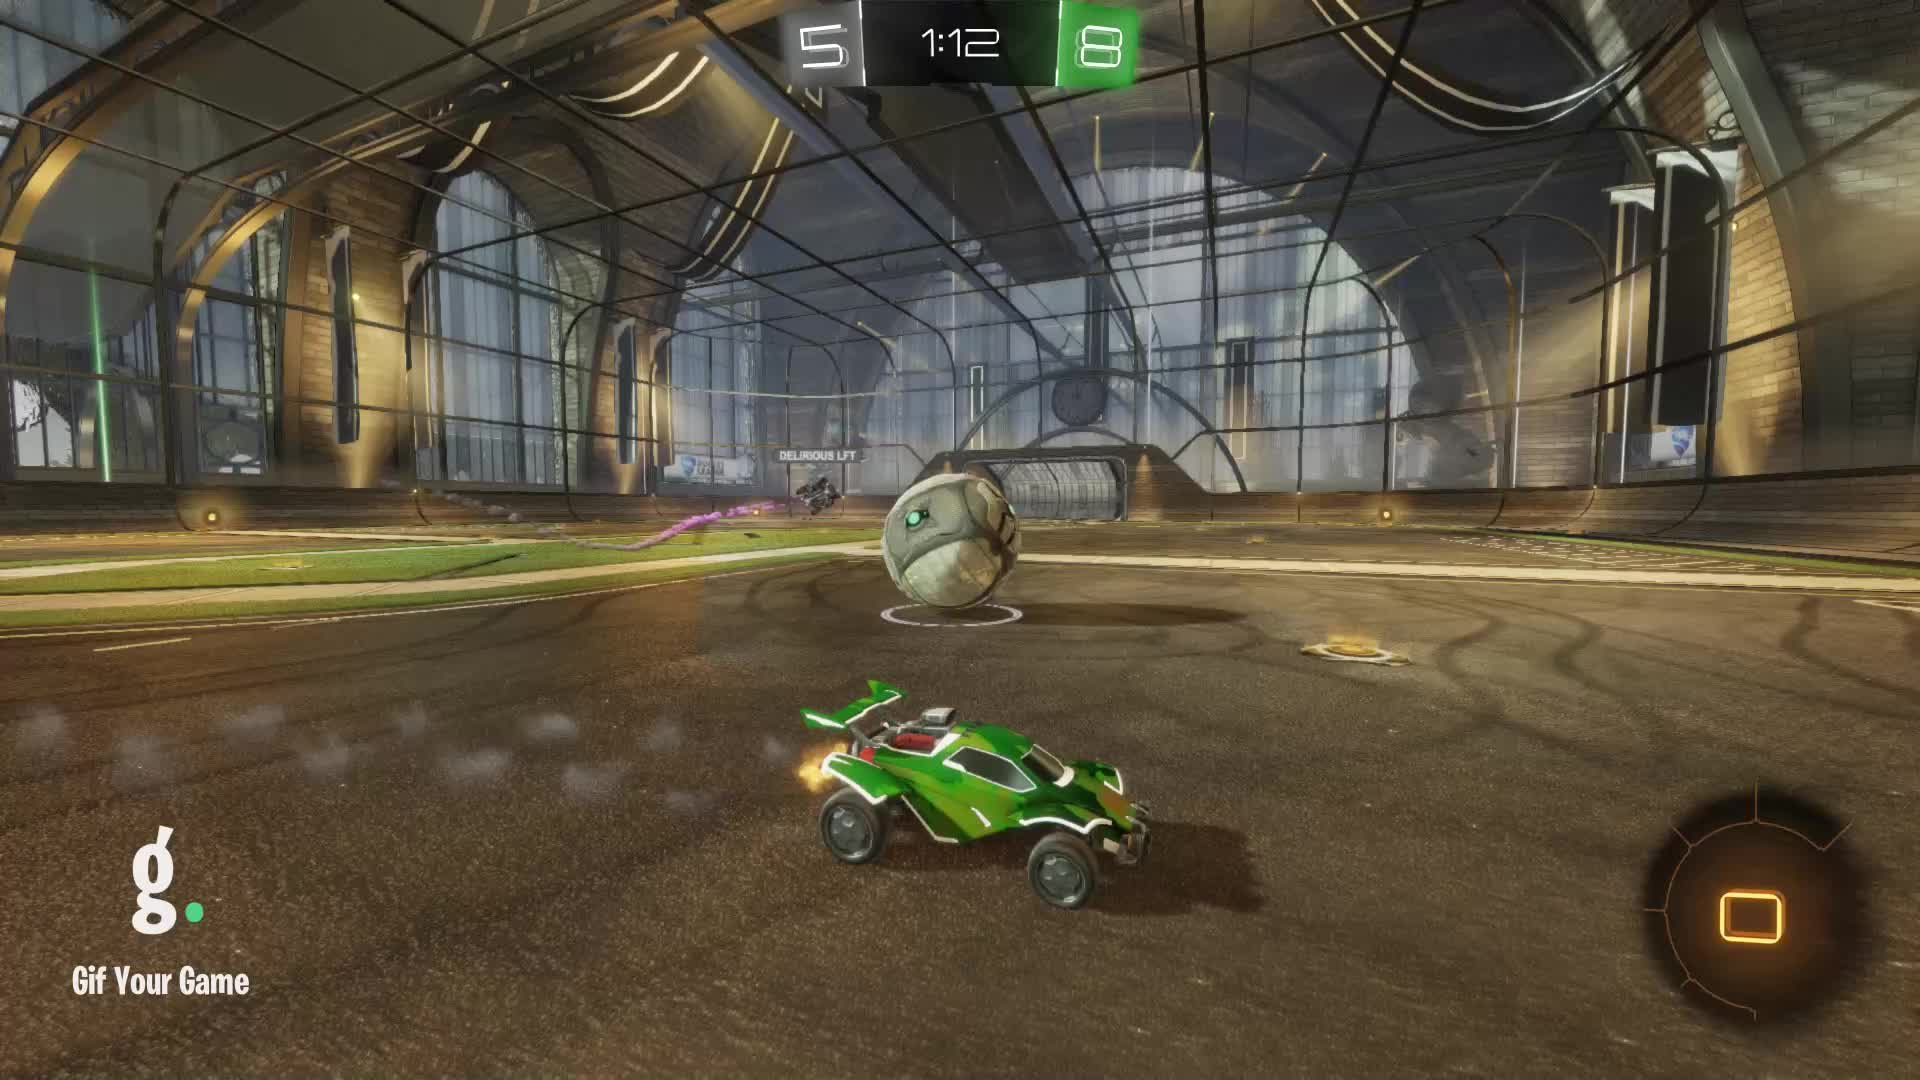 Gif Your Game, GifYourGame, Goal, Linux Cow | Ceiling shots only?, Rocket League, RocketLeague, Goal 14: Linux Cow | Ceiling shots only? GIFs